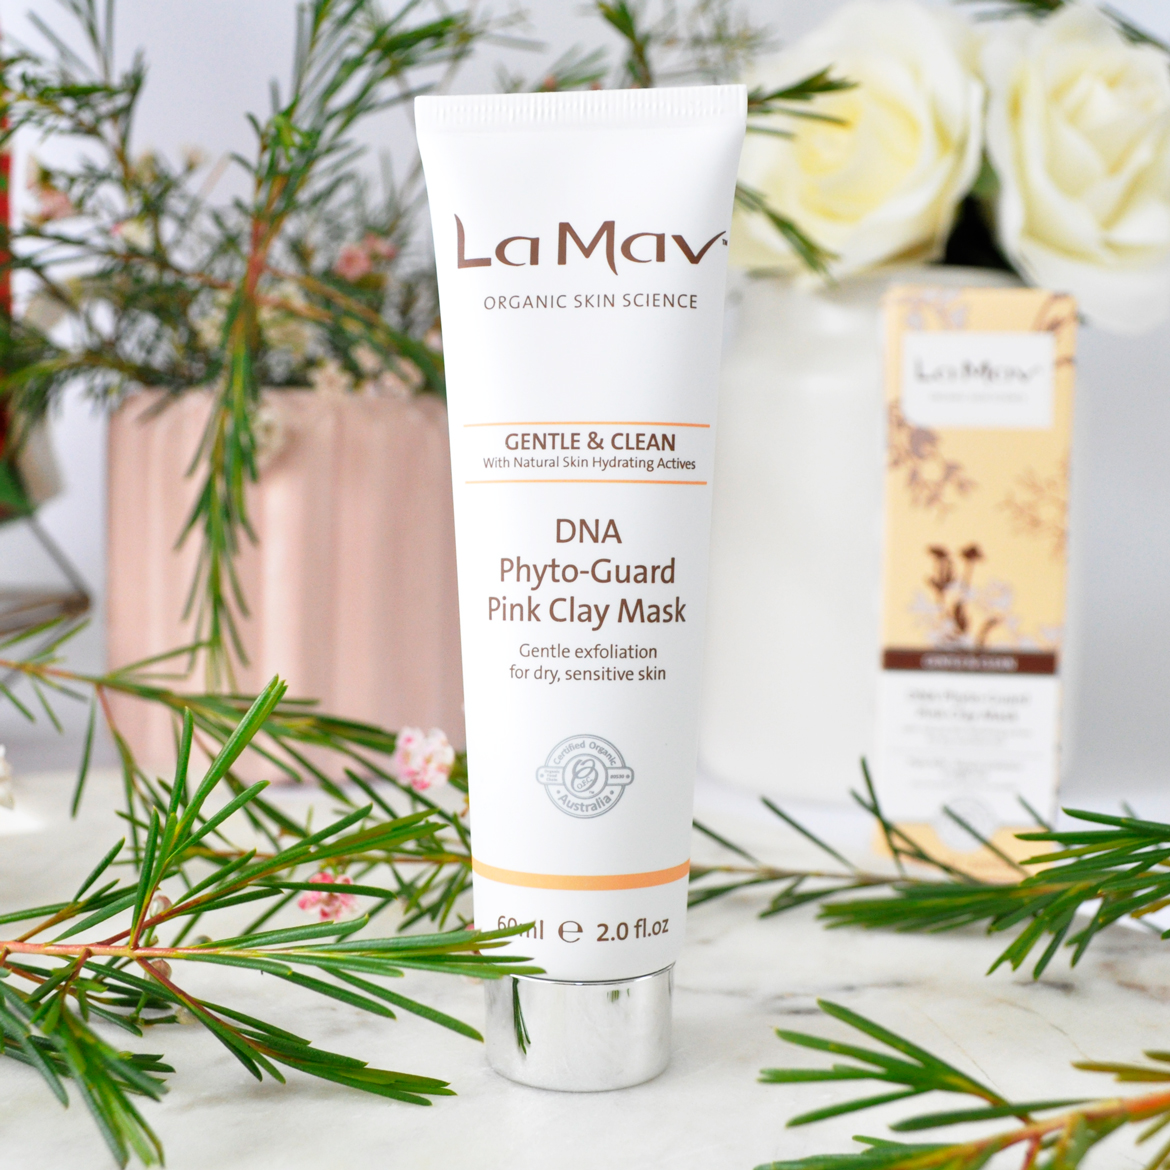 La Mav's DNA Phyto-Guard Pink Clay Mask